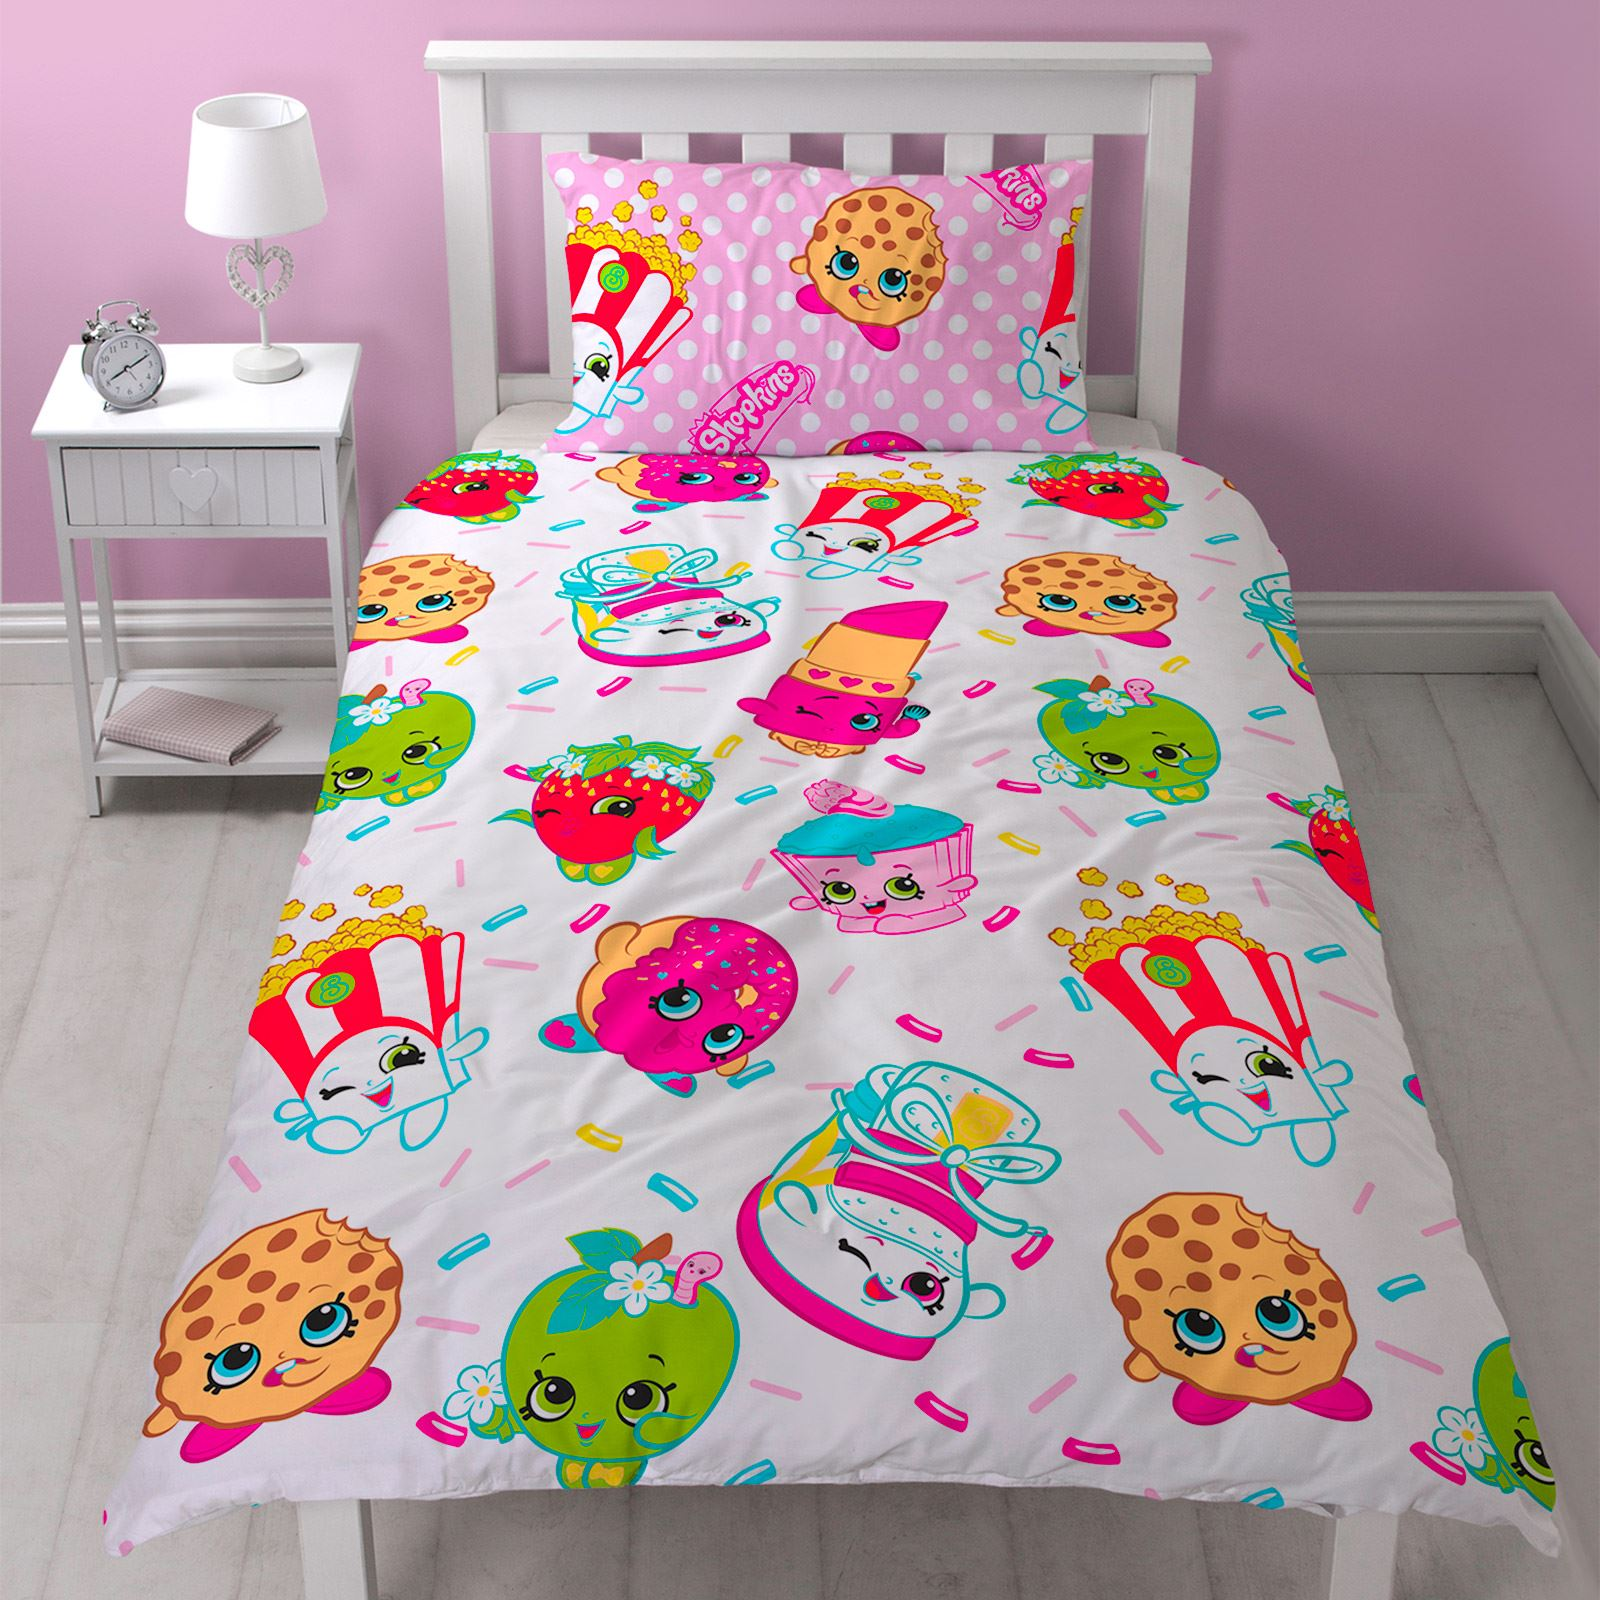 Shopkins Bedroom Kids Girls Bedding Ebay